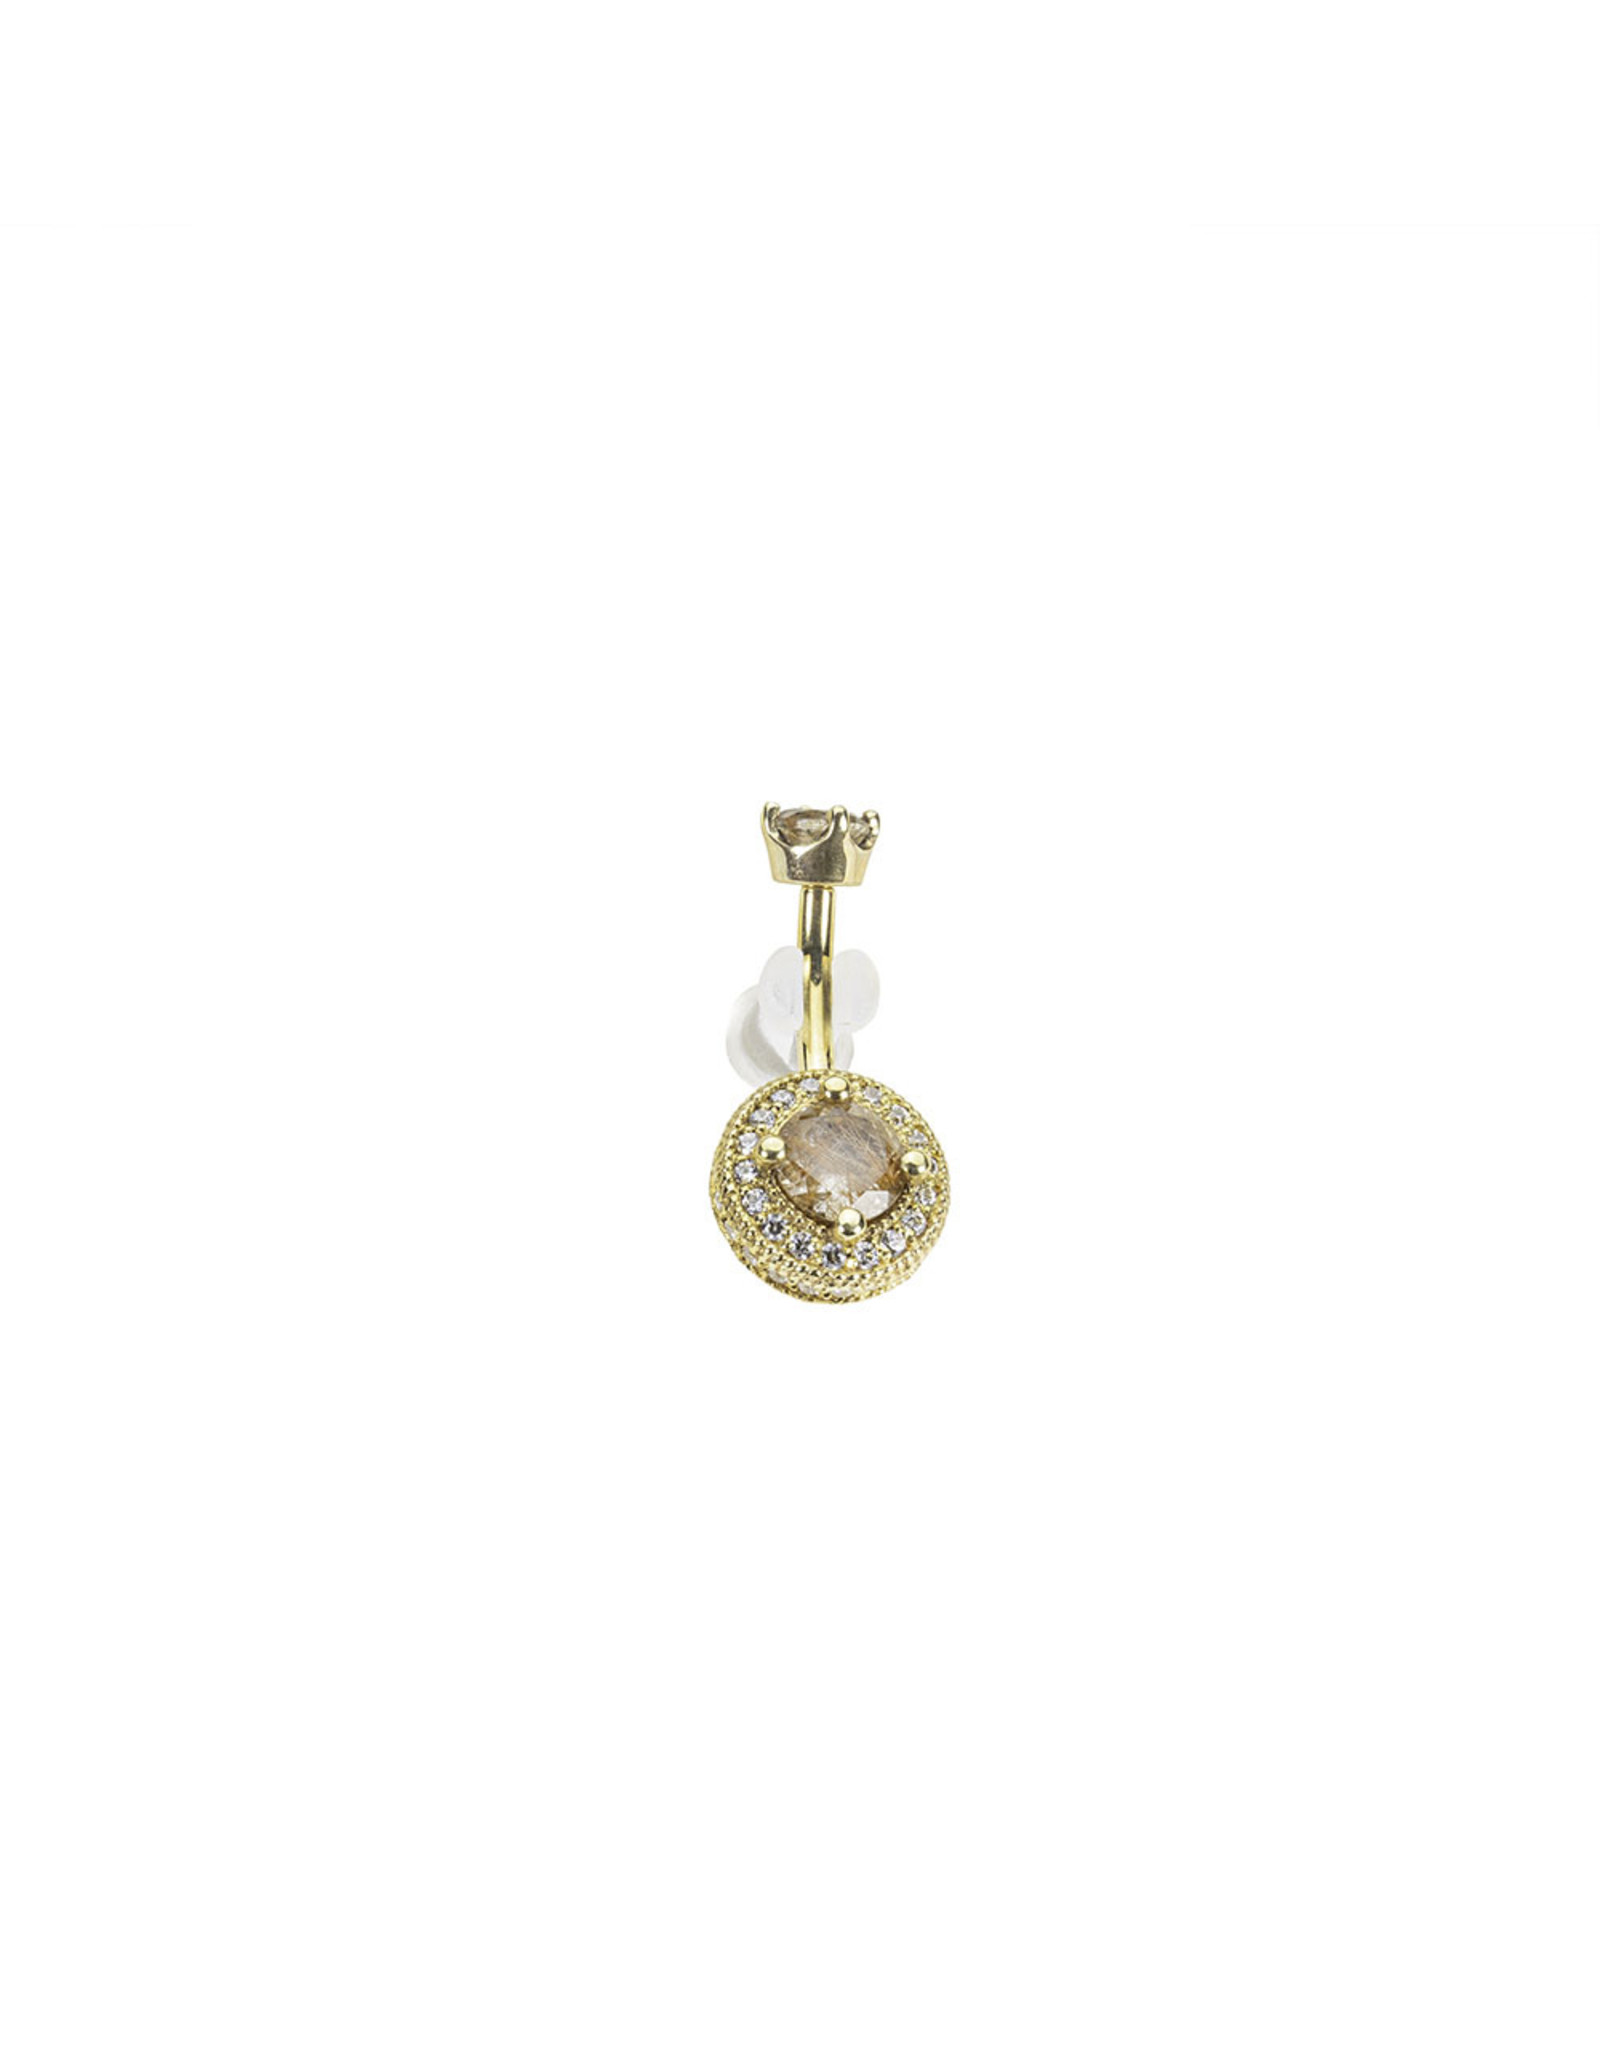 """BVLA BVLA 14g 3/8 yellow gold """"Halo"""" navel curve with 4.0 prong set rutilated quartz top and a 5.0 rutilated quartz center surrounded by 1.25 & 1.0 CZ"""